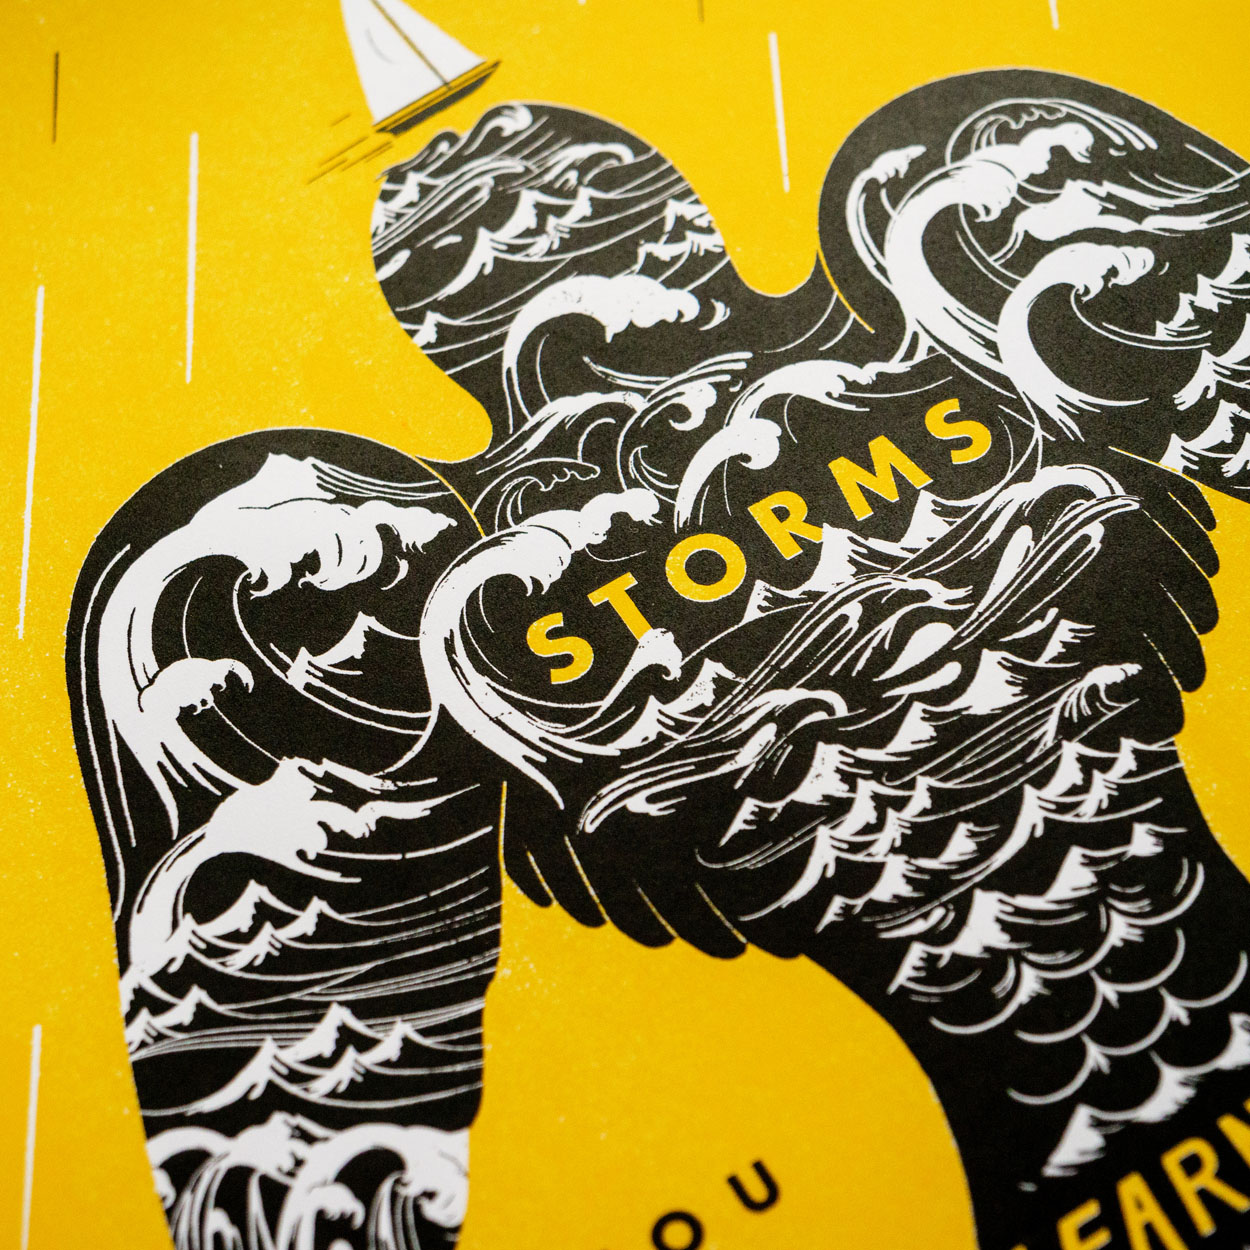 DoNotFearStorms_WBS0501-SOCIAL.jpg